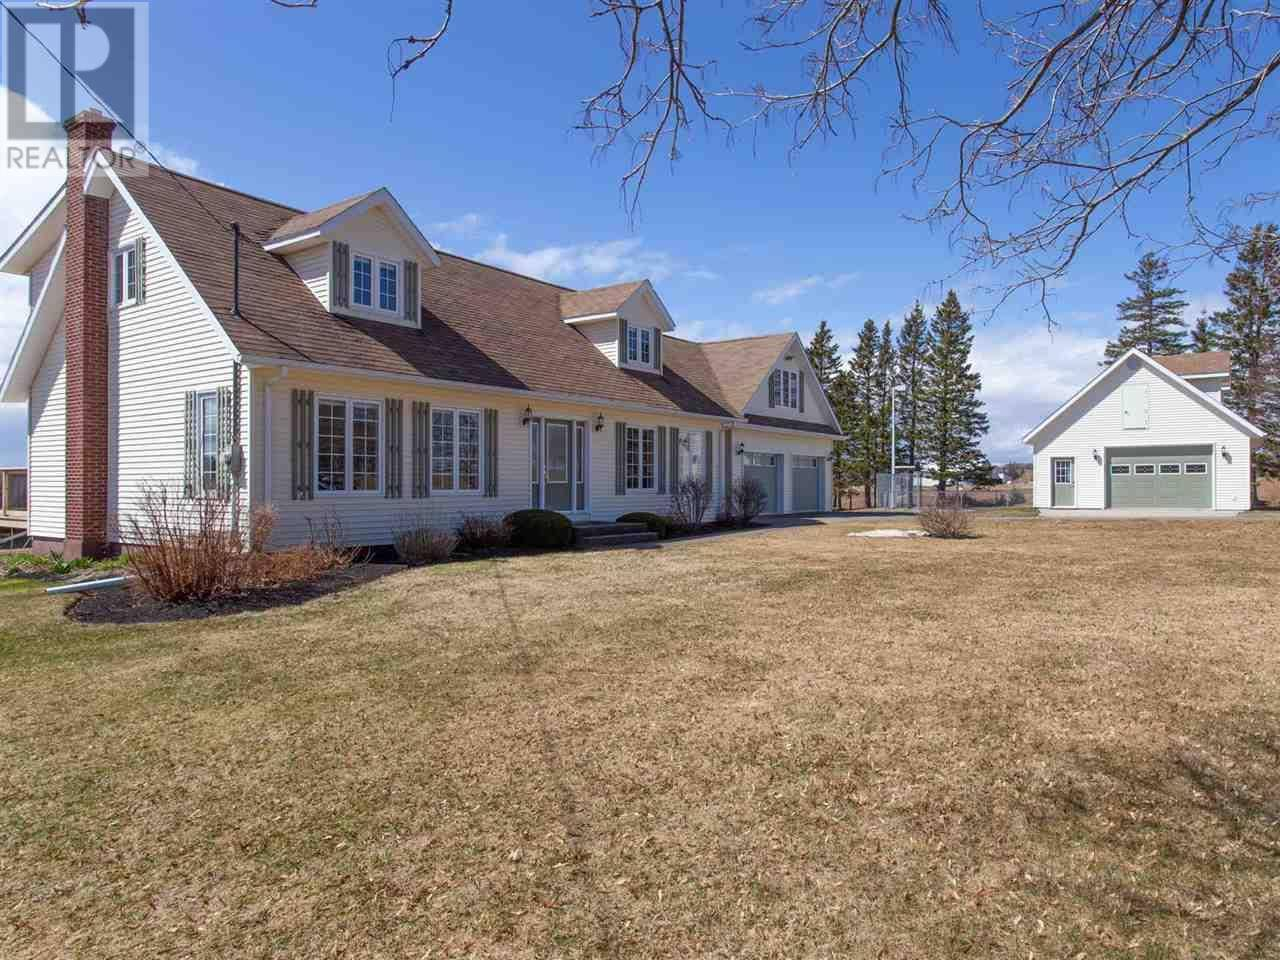 House for sale at 813 Peters Rd Elmwood Prince Edward Island - MLS: 201926335